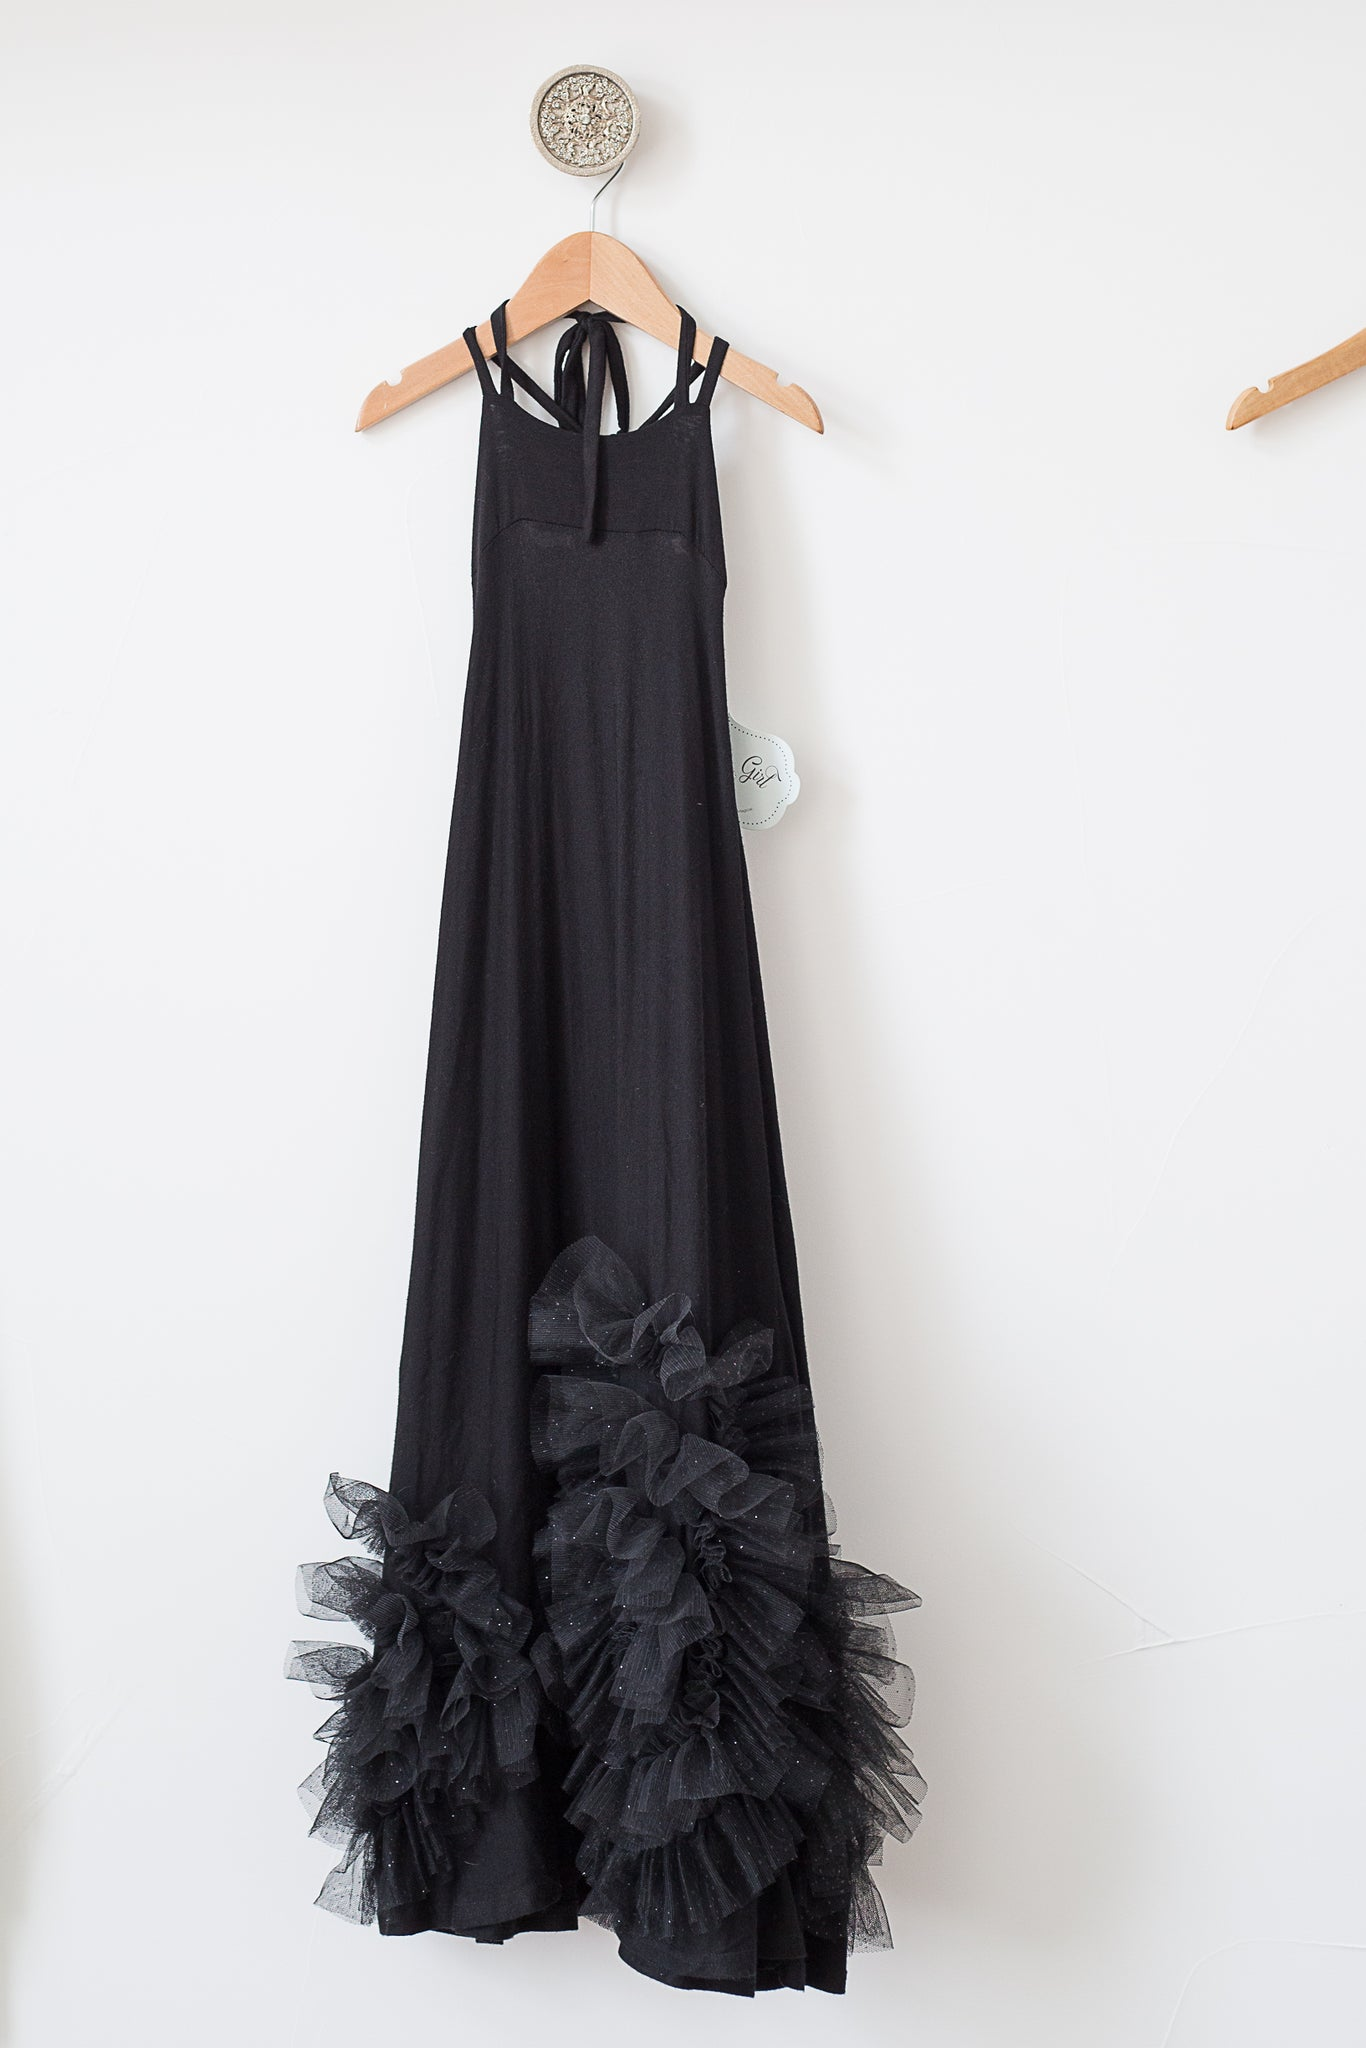 Pixie Girl Maxi Dress - Black/Sparkle